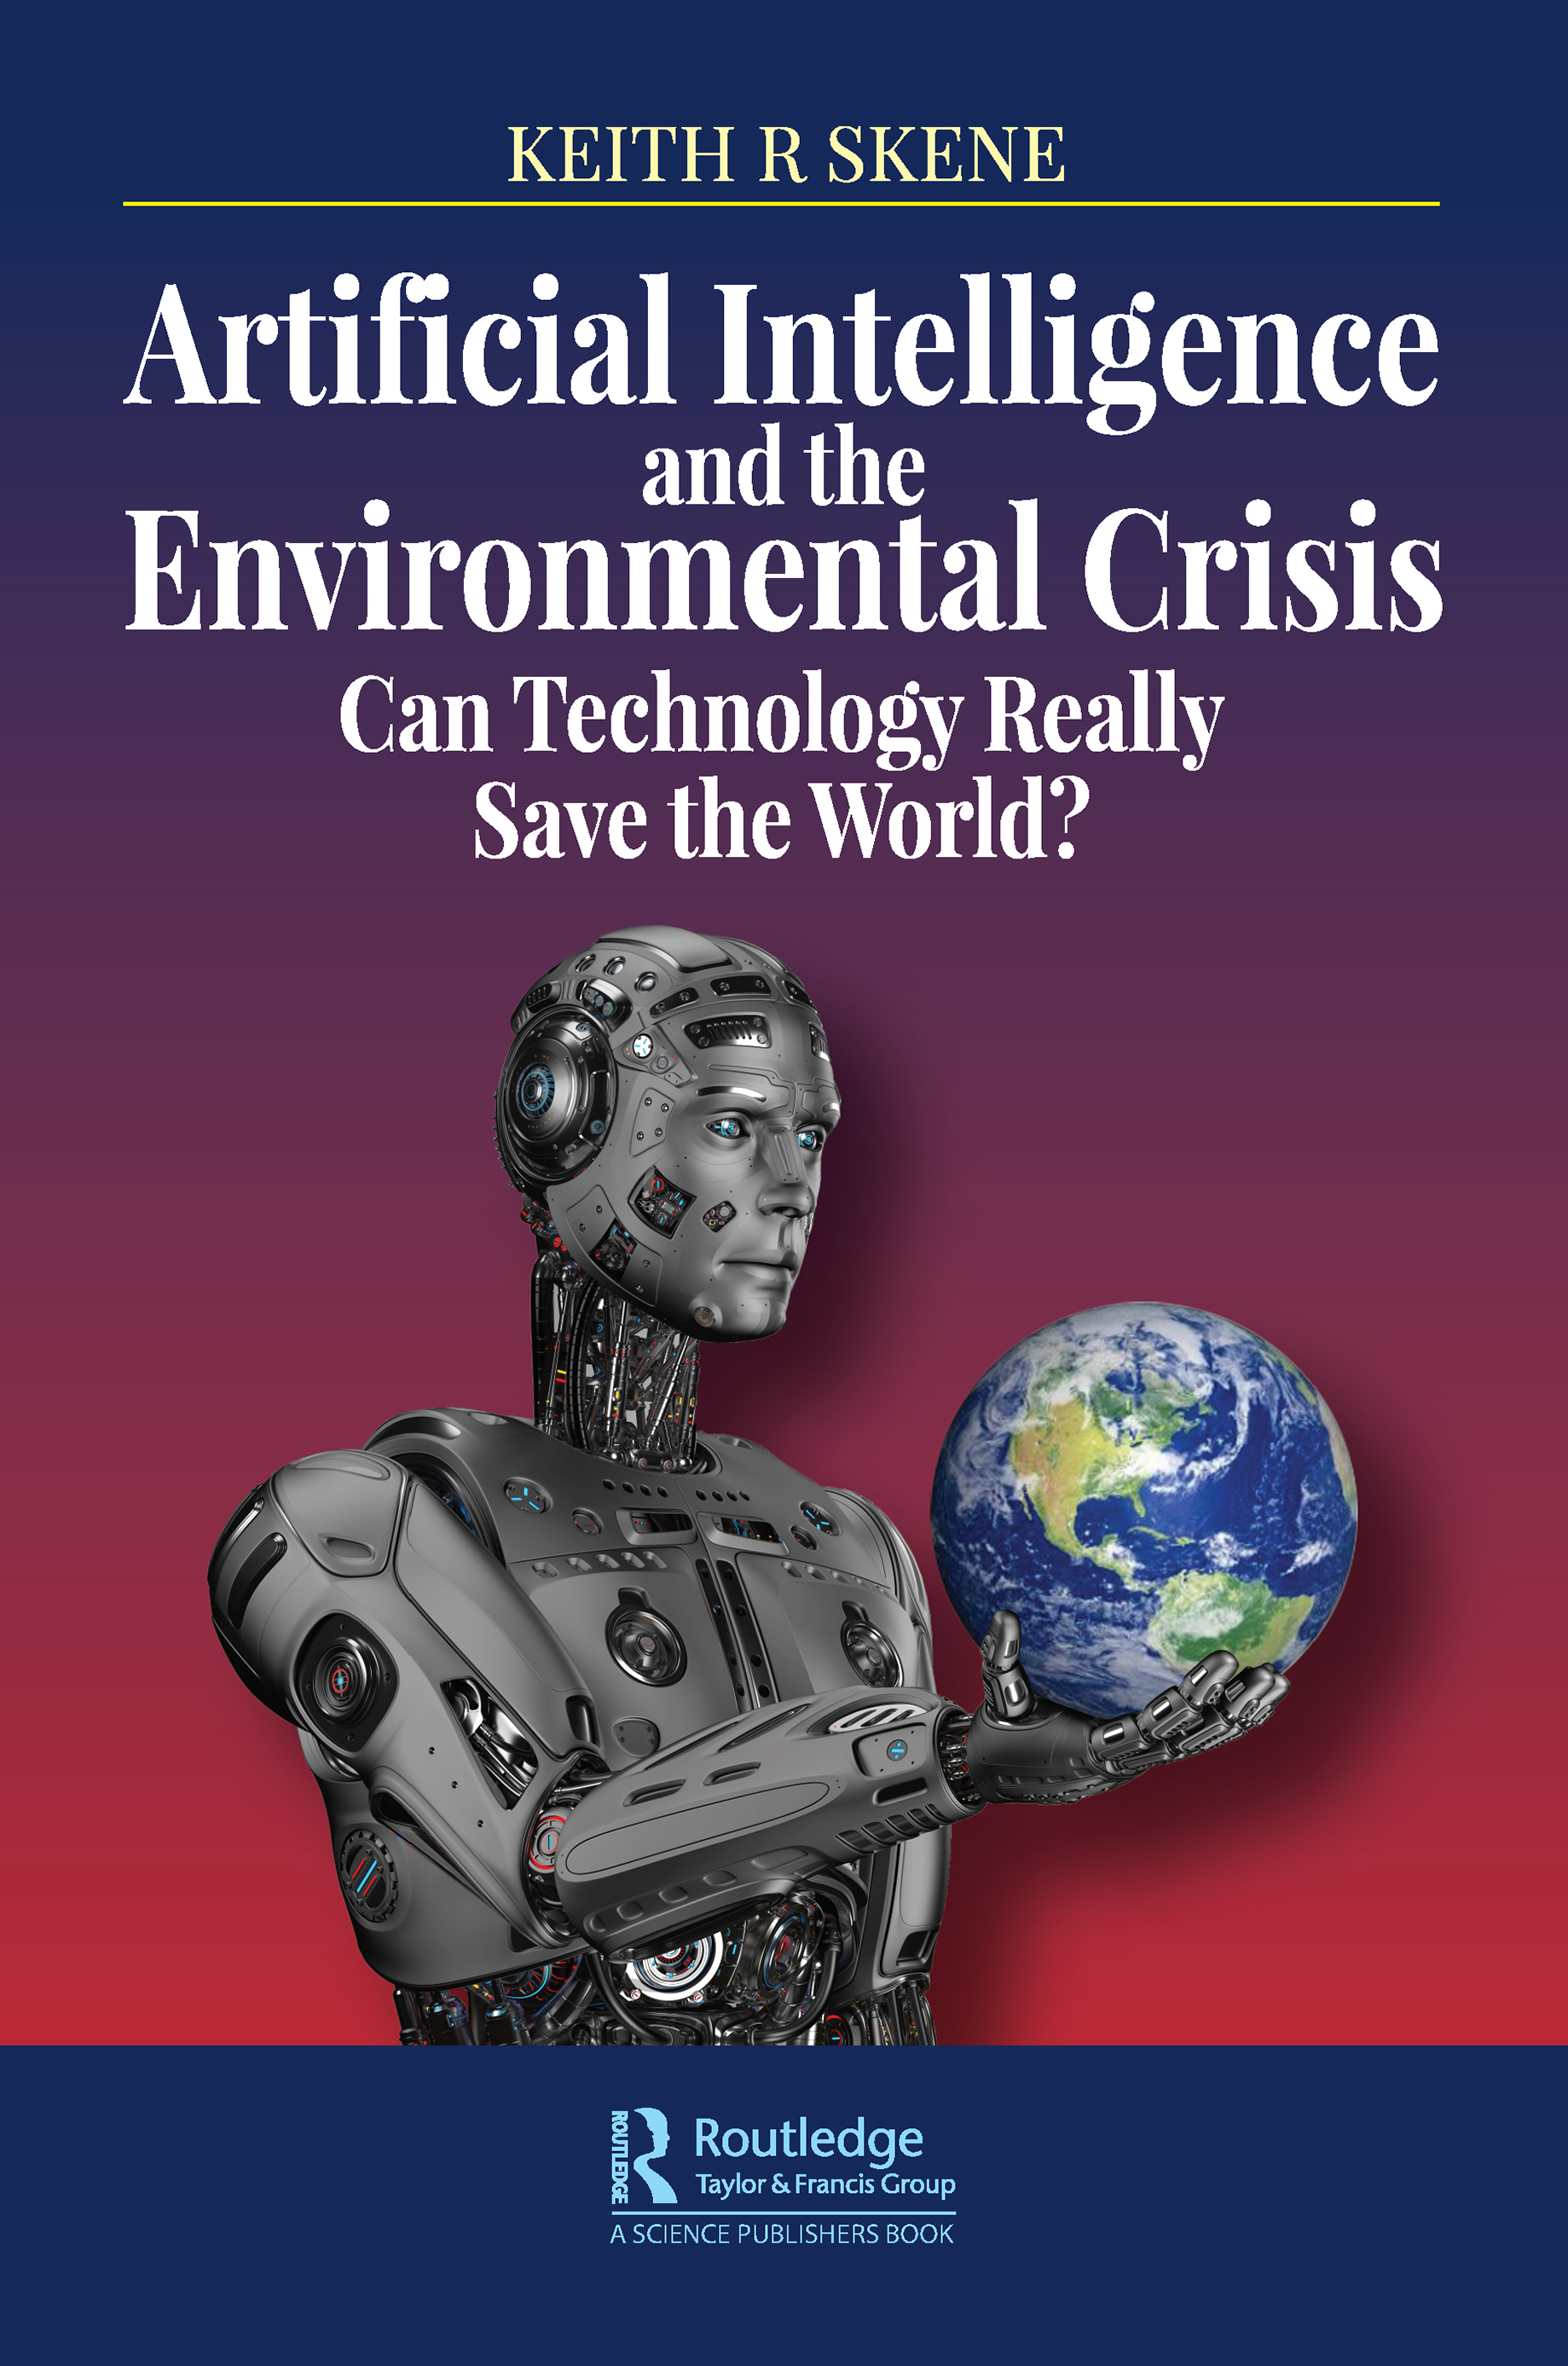 Artificial Intelligence and the Environmental Crisis: Can Technology Really Save the World? book cover